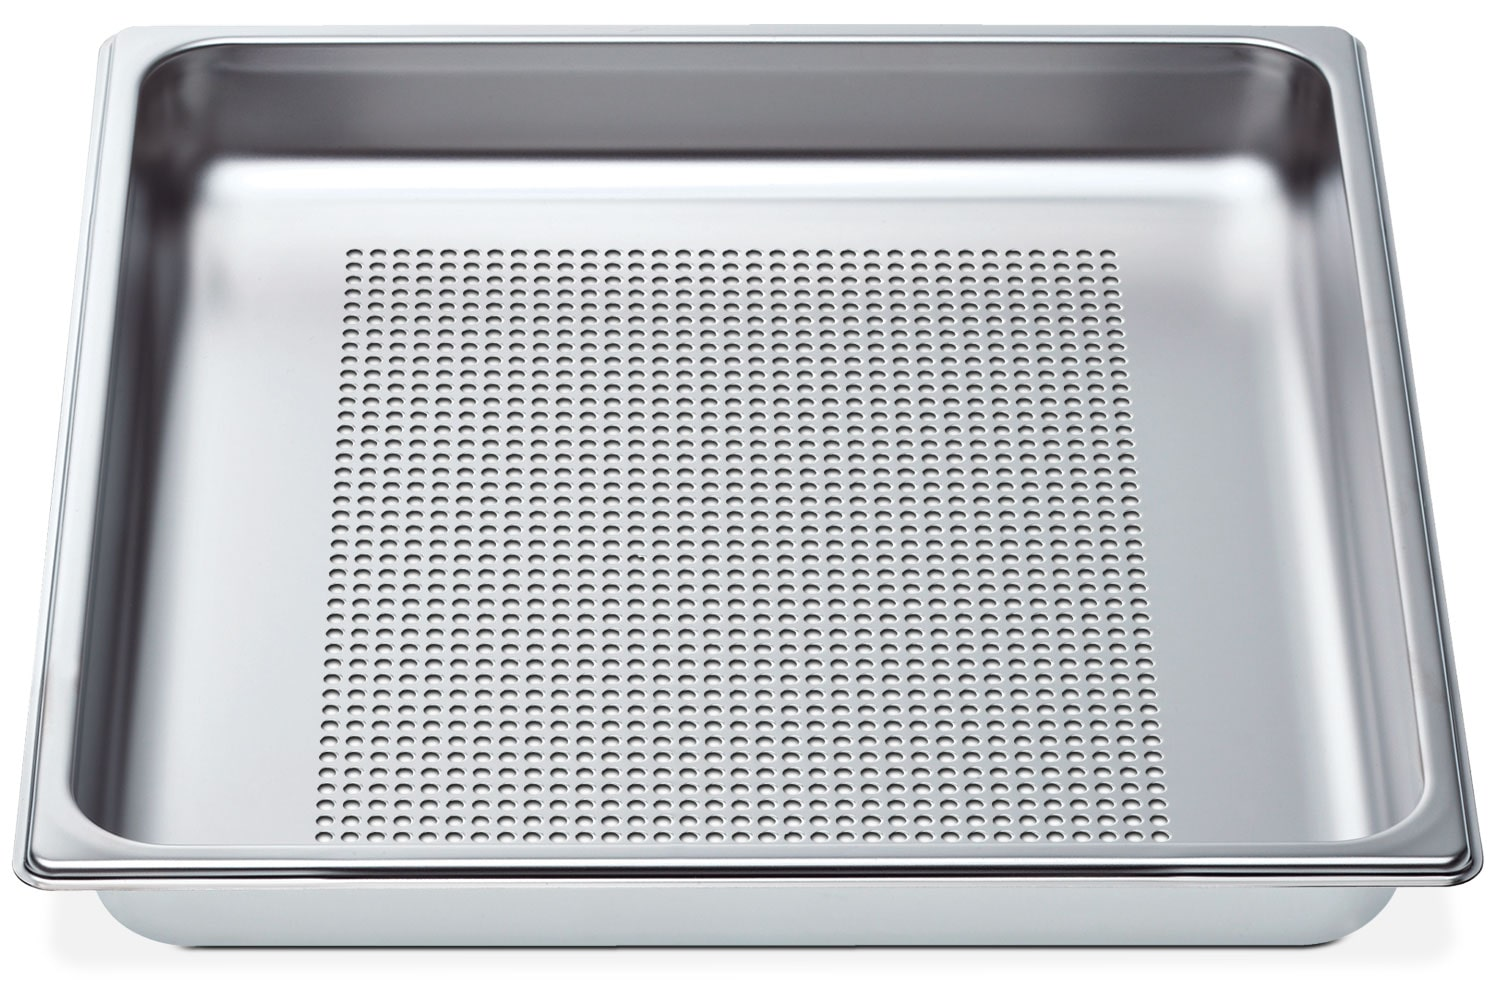 Cooking Products - Bosch Perforated Cooking Pan - HEZ36D453G